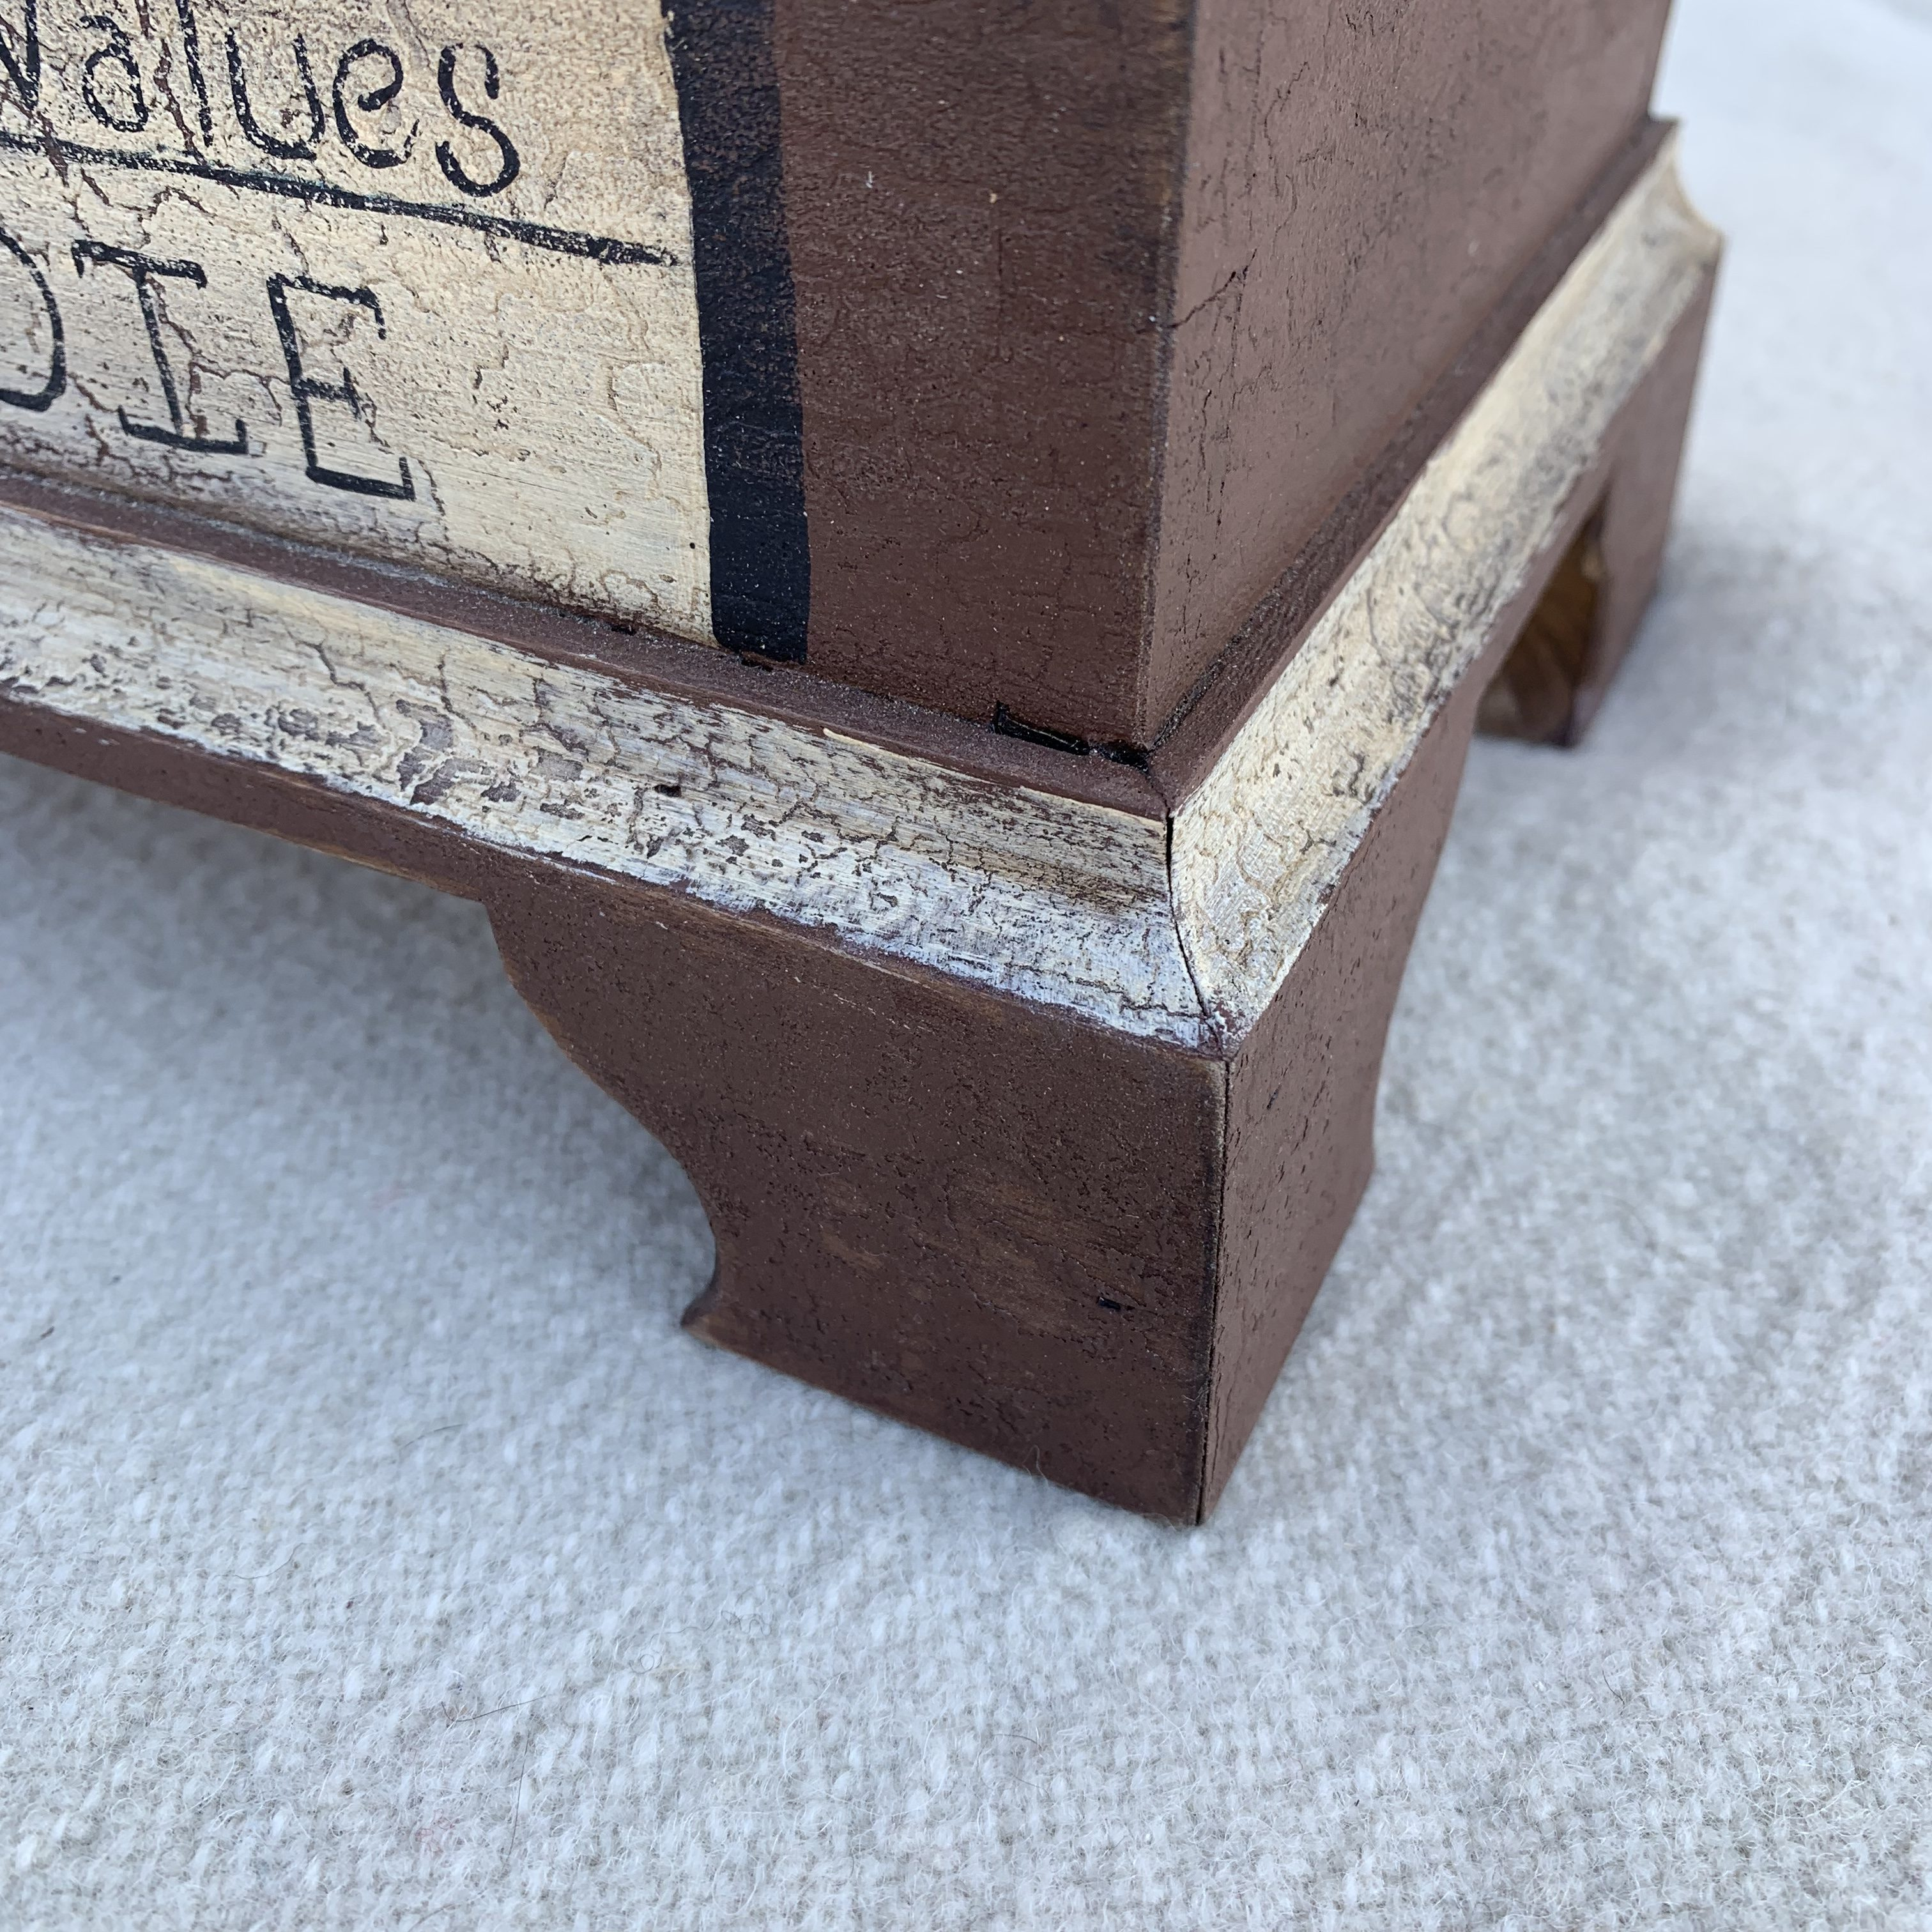 Keepsake box foot detail